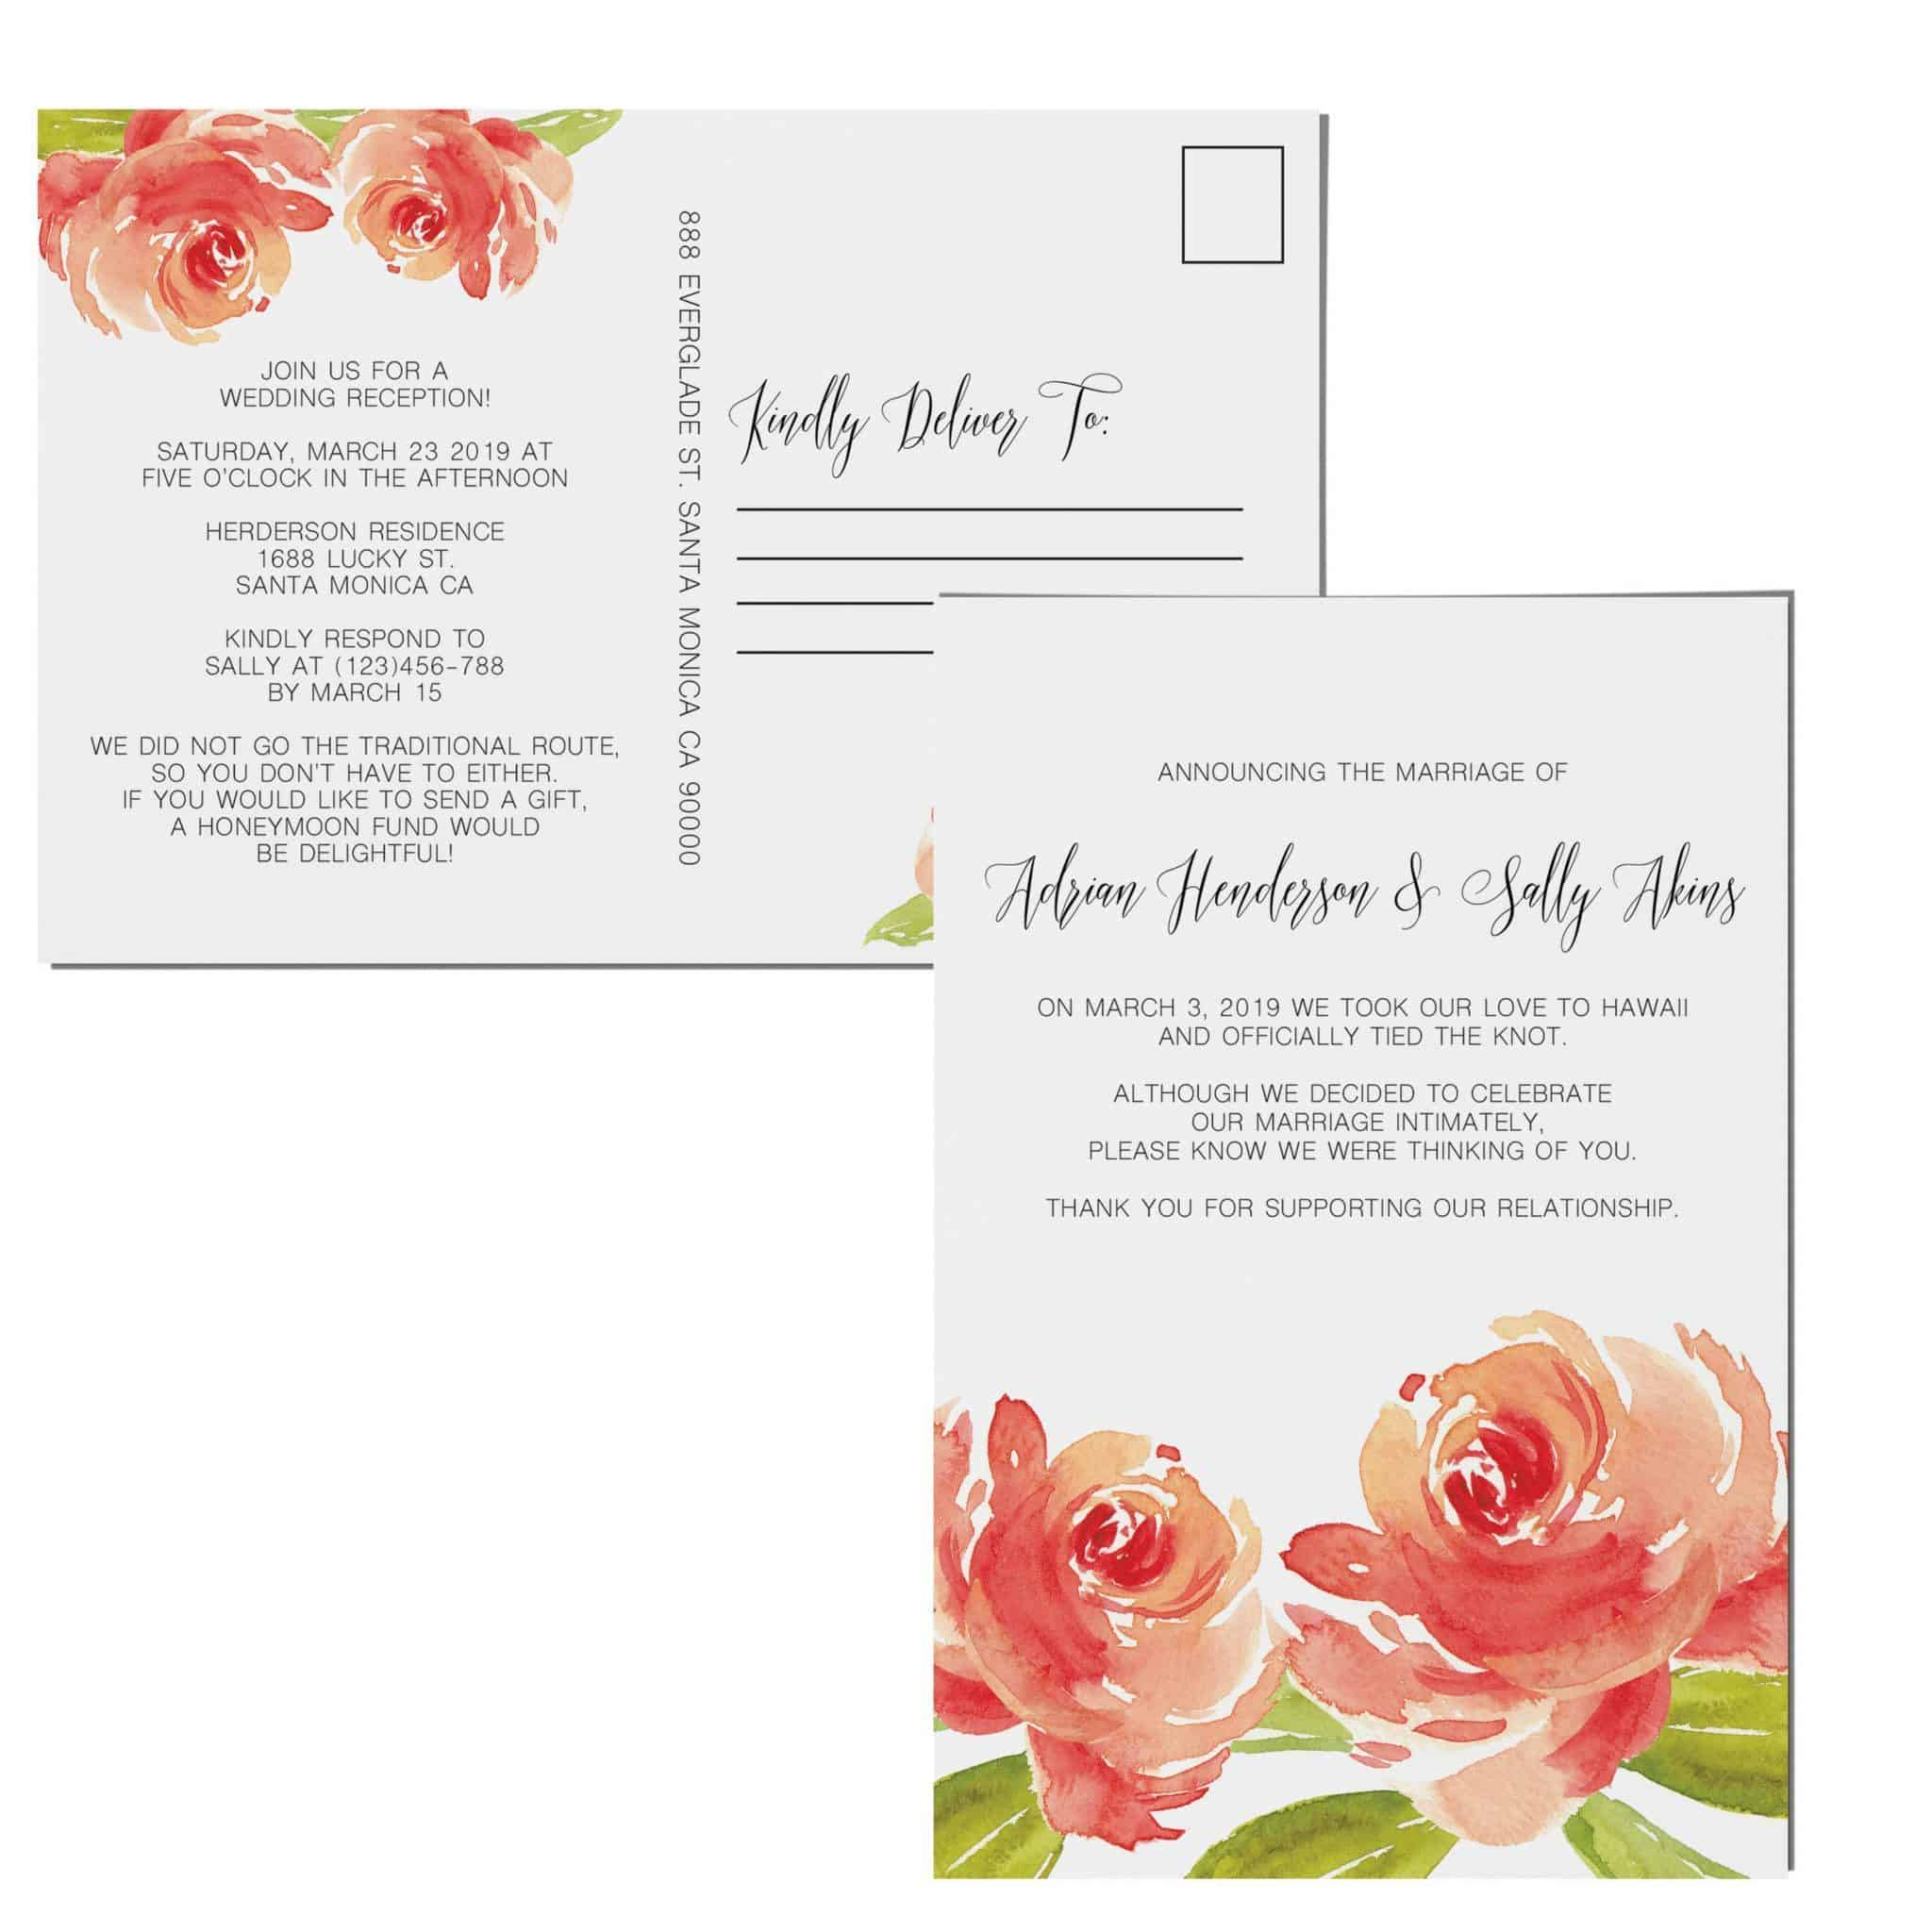 Floral Bloom, Elopement Announcement Cards, Tied the Knot Elopement ...